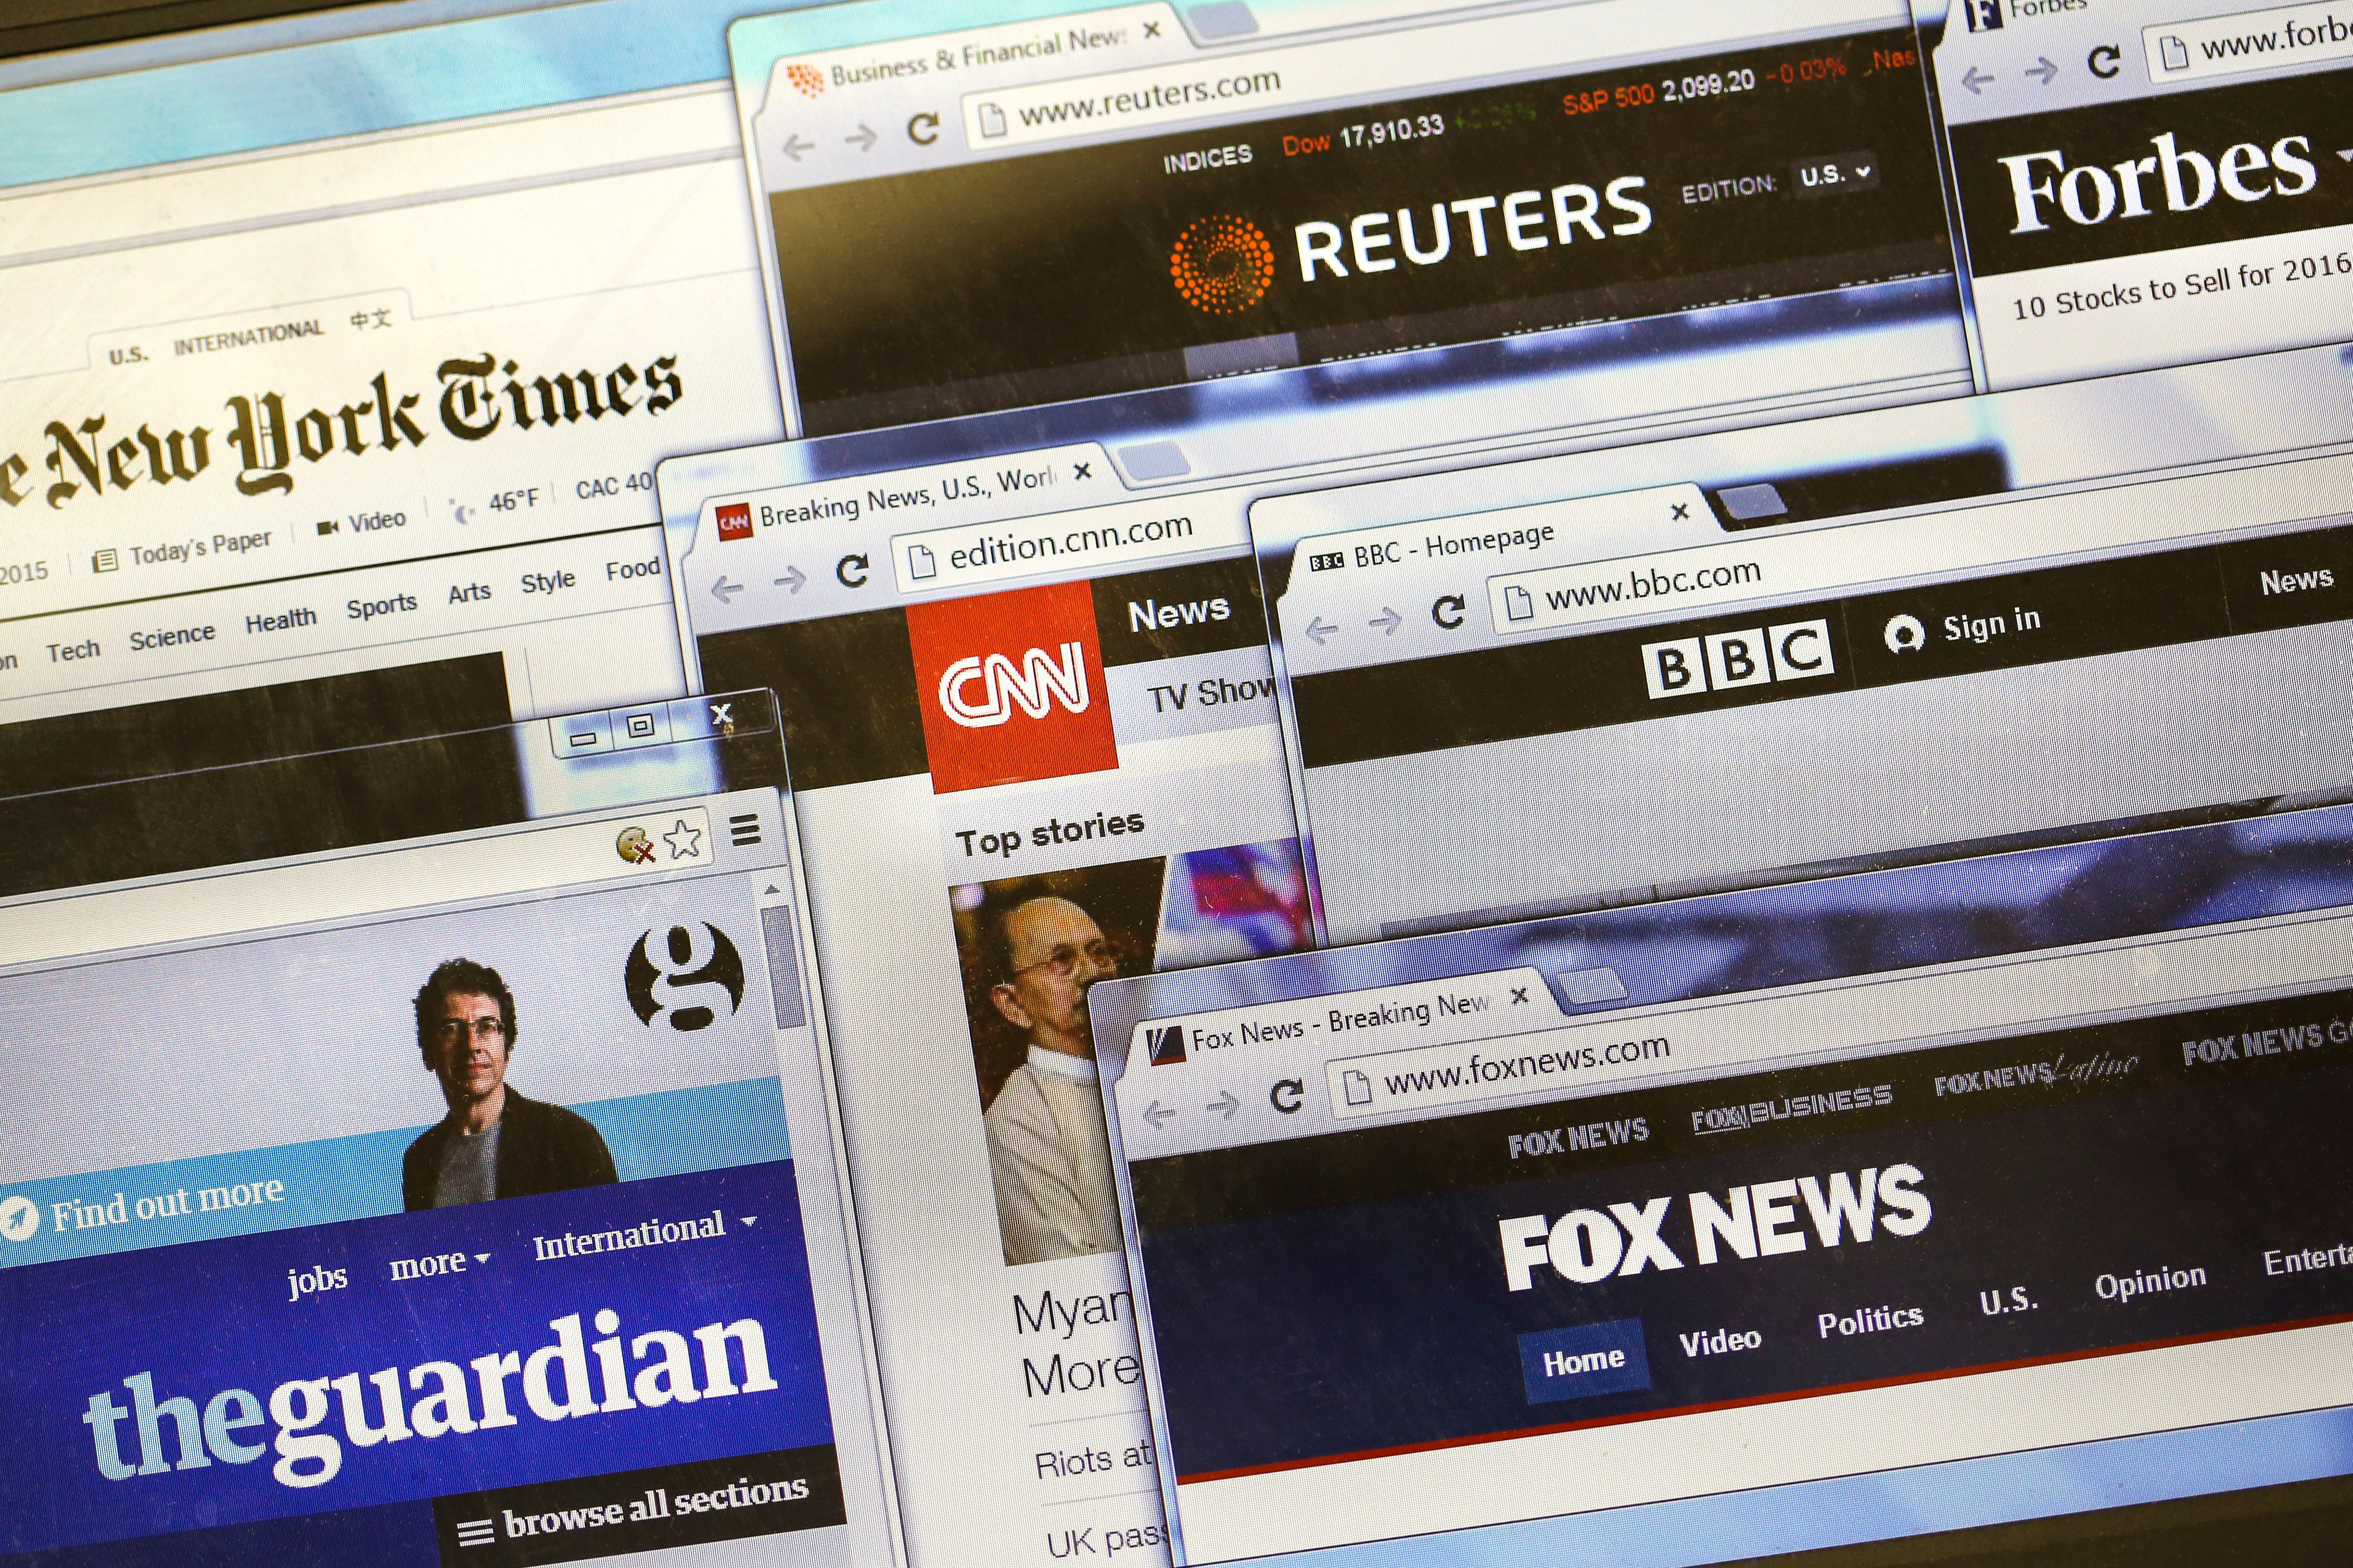 Novi Sad, Serbia - November 9, 2015: Websites (homepages) of leading news websites and publishing media in the world - Reuters, New York Times, CNN, BBC, The Guardian, Forbes, Fox news.